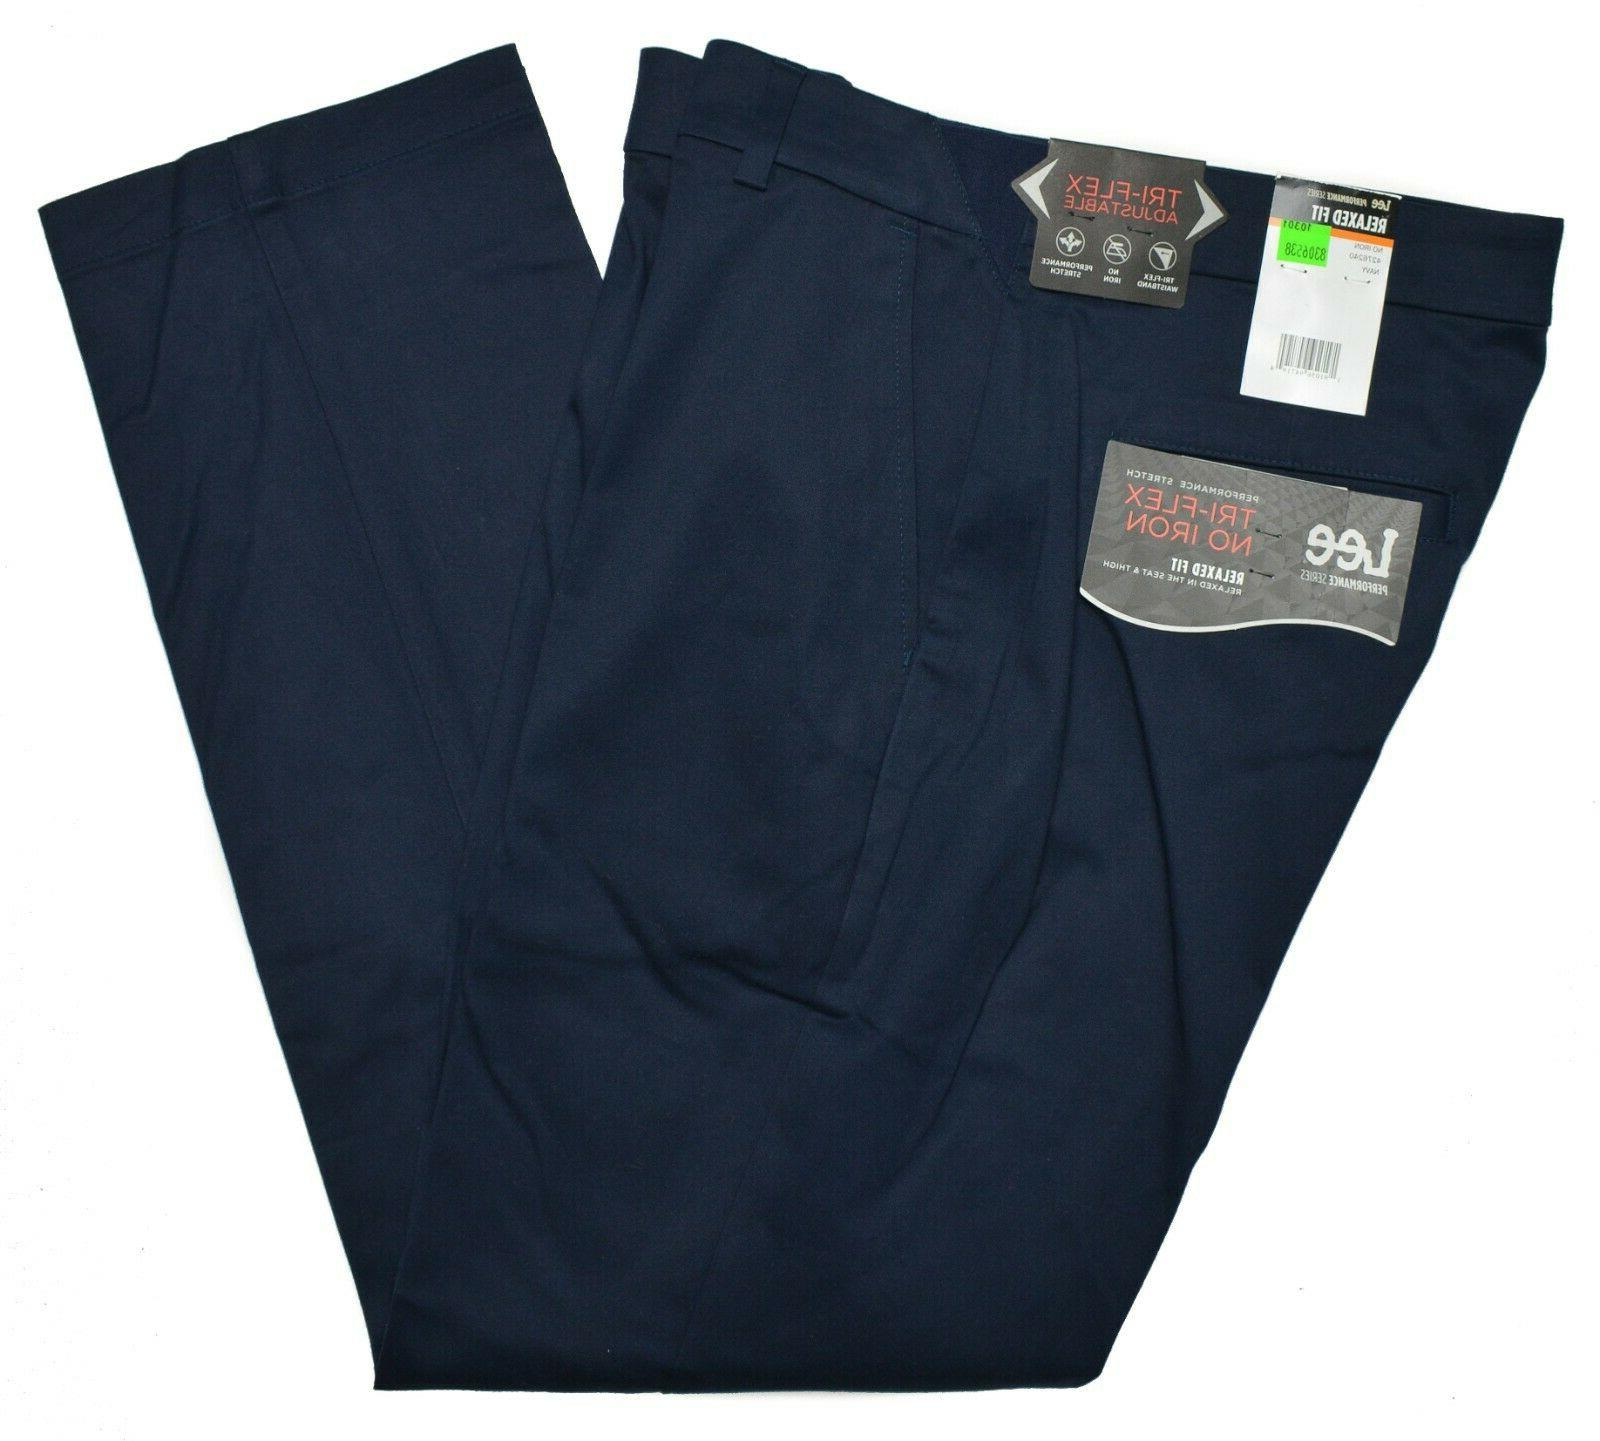 10301 new men s flat front relaxed